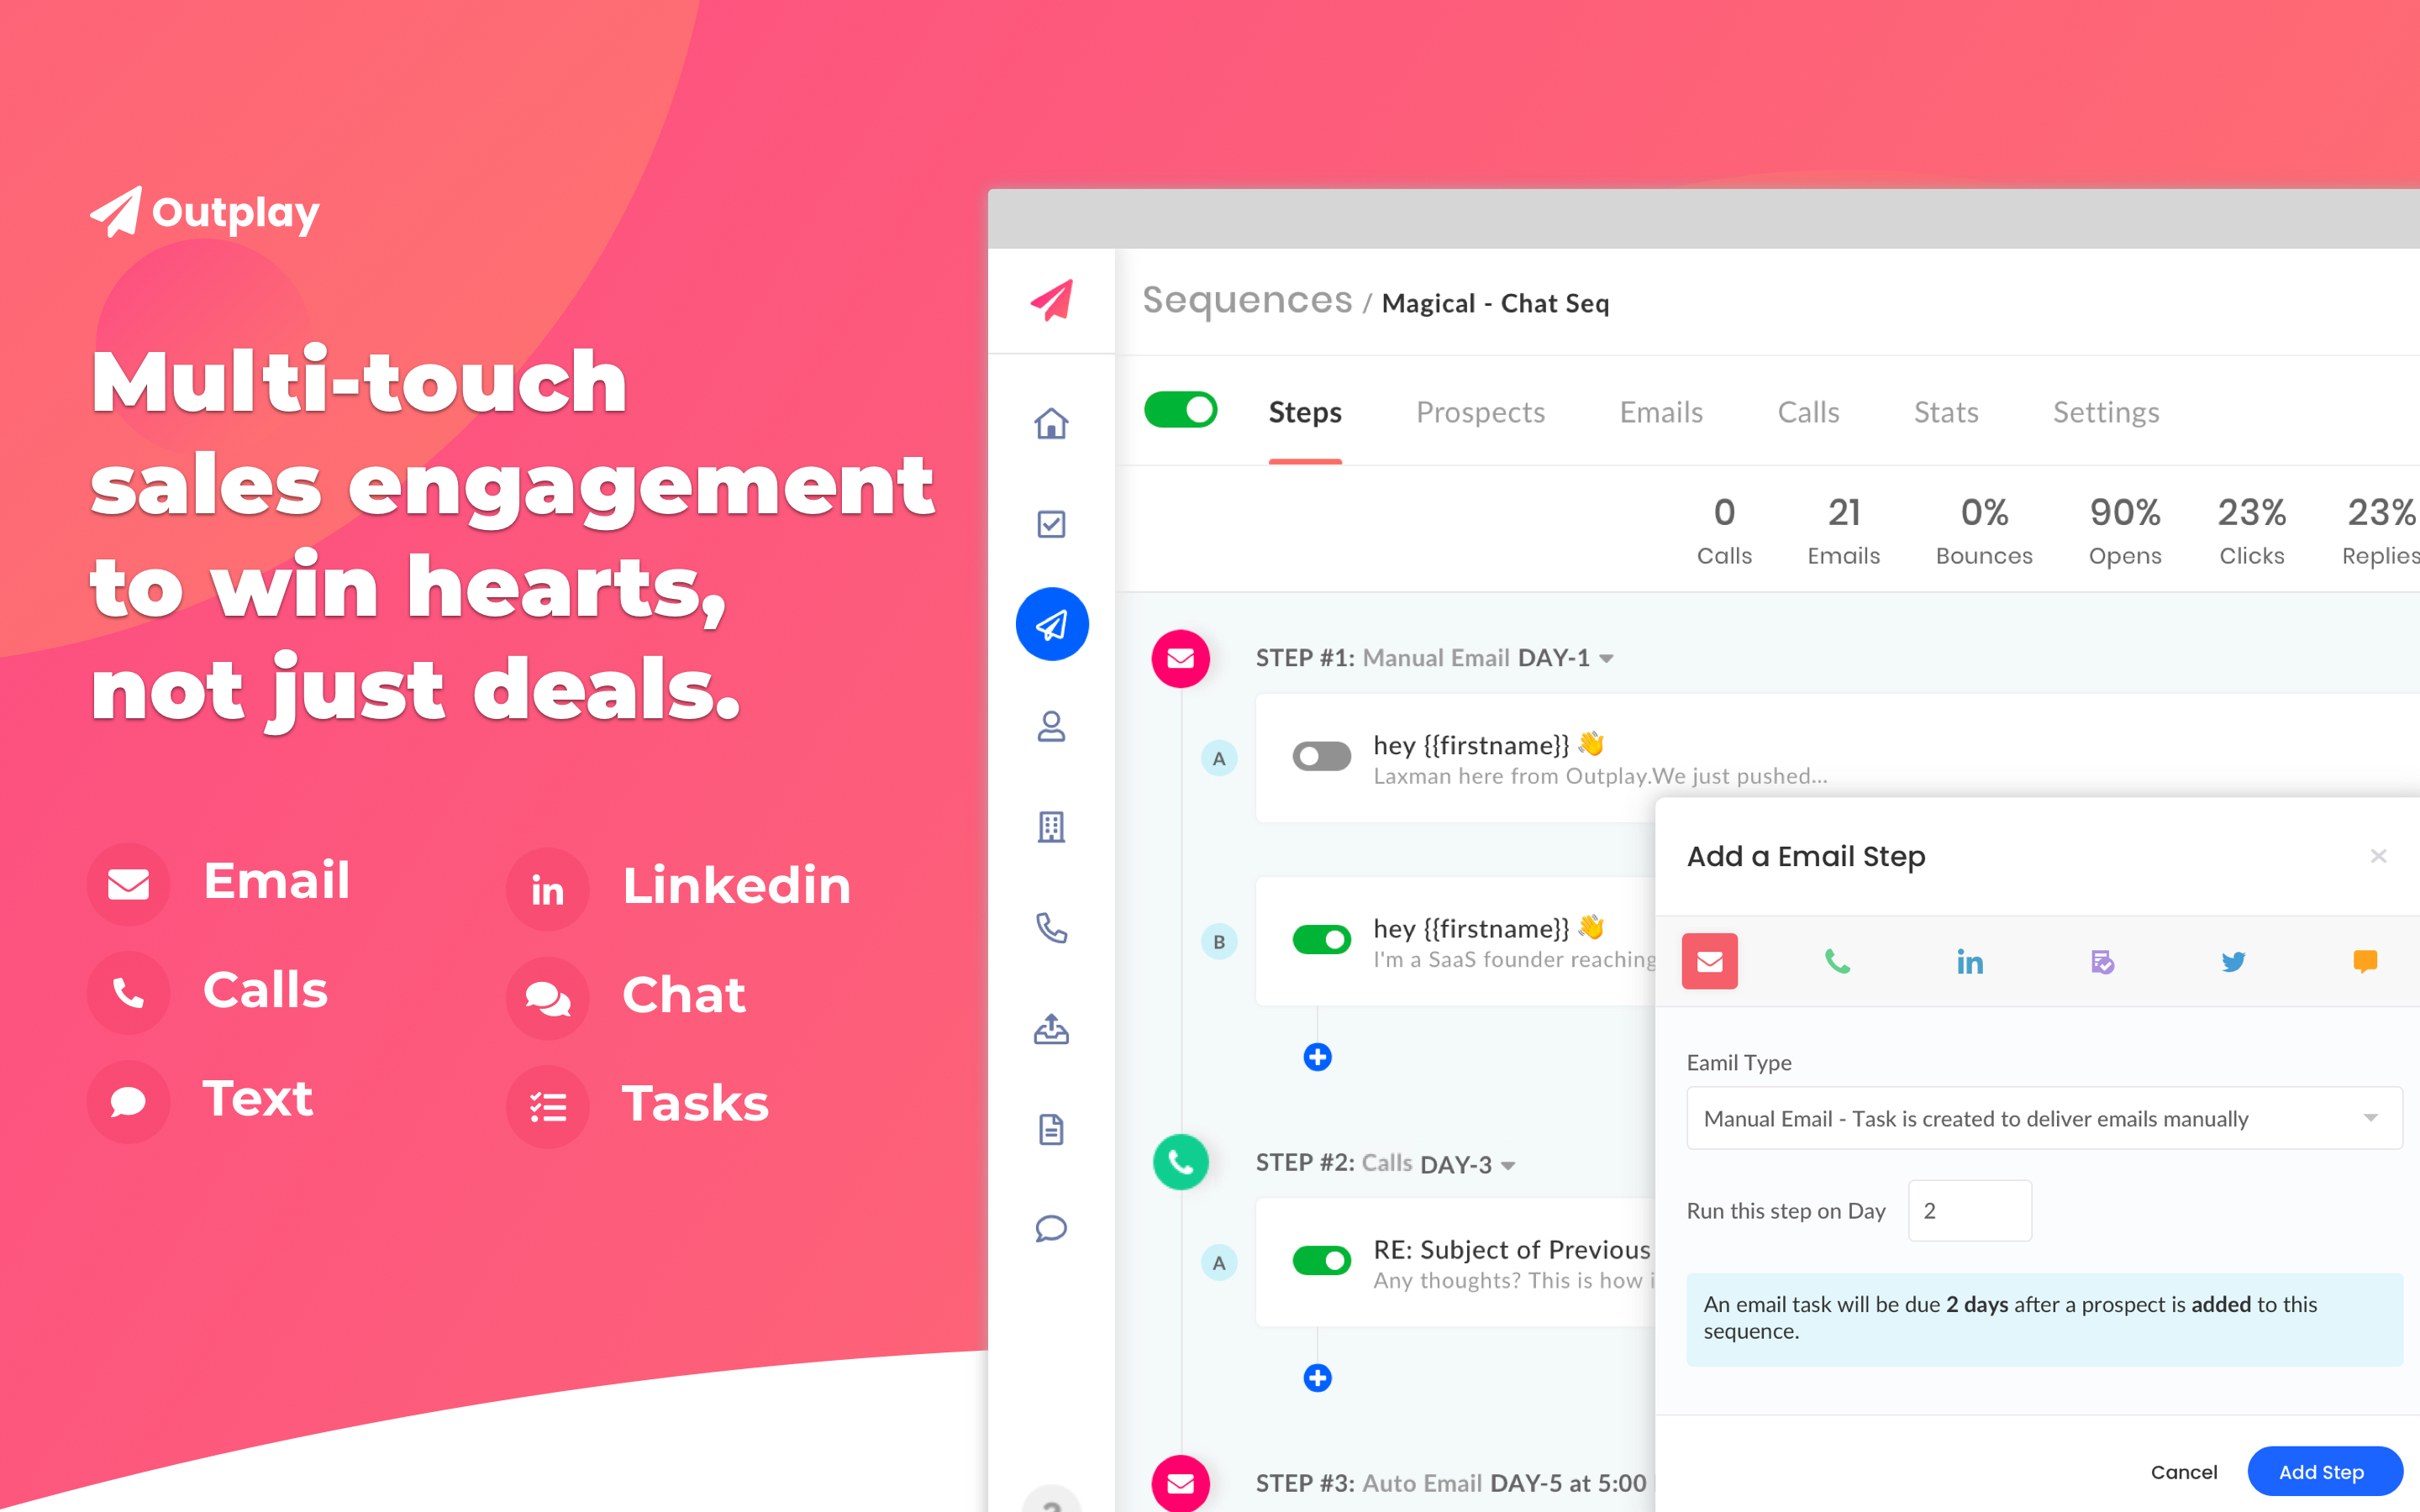 Screenshots of Outplay's sales engagement platform to make automating sales tasks